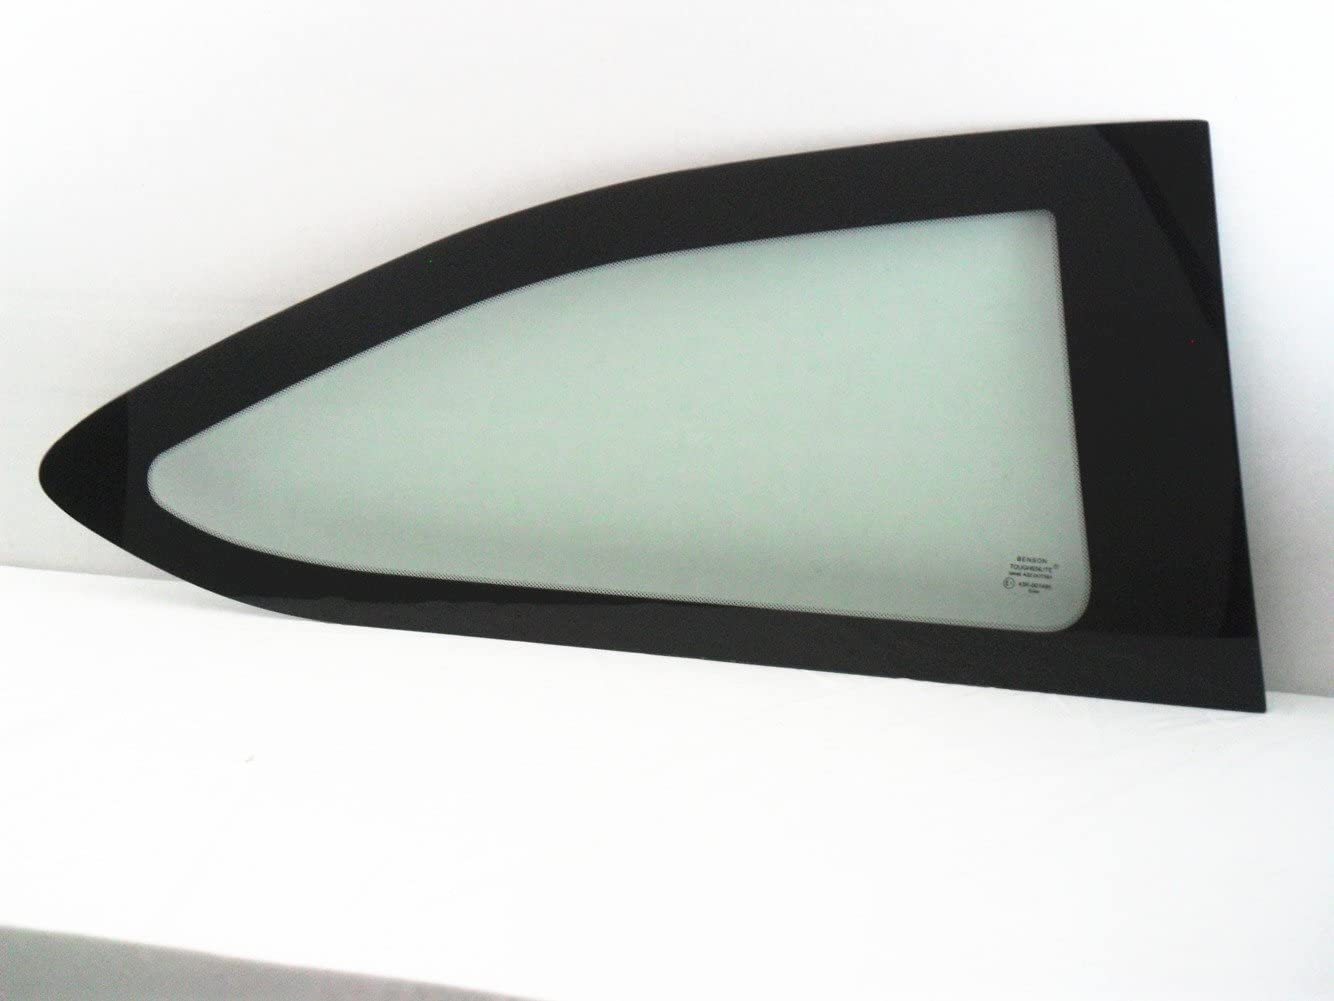 NAGD Passenger Right Side Rear 67% OFF of fixed price Quarter Glass Window Comp Max 65% OFF